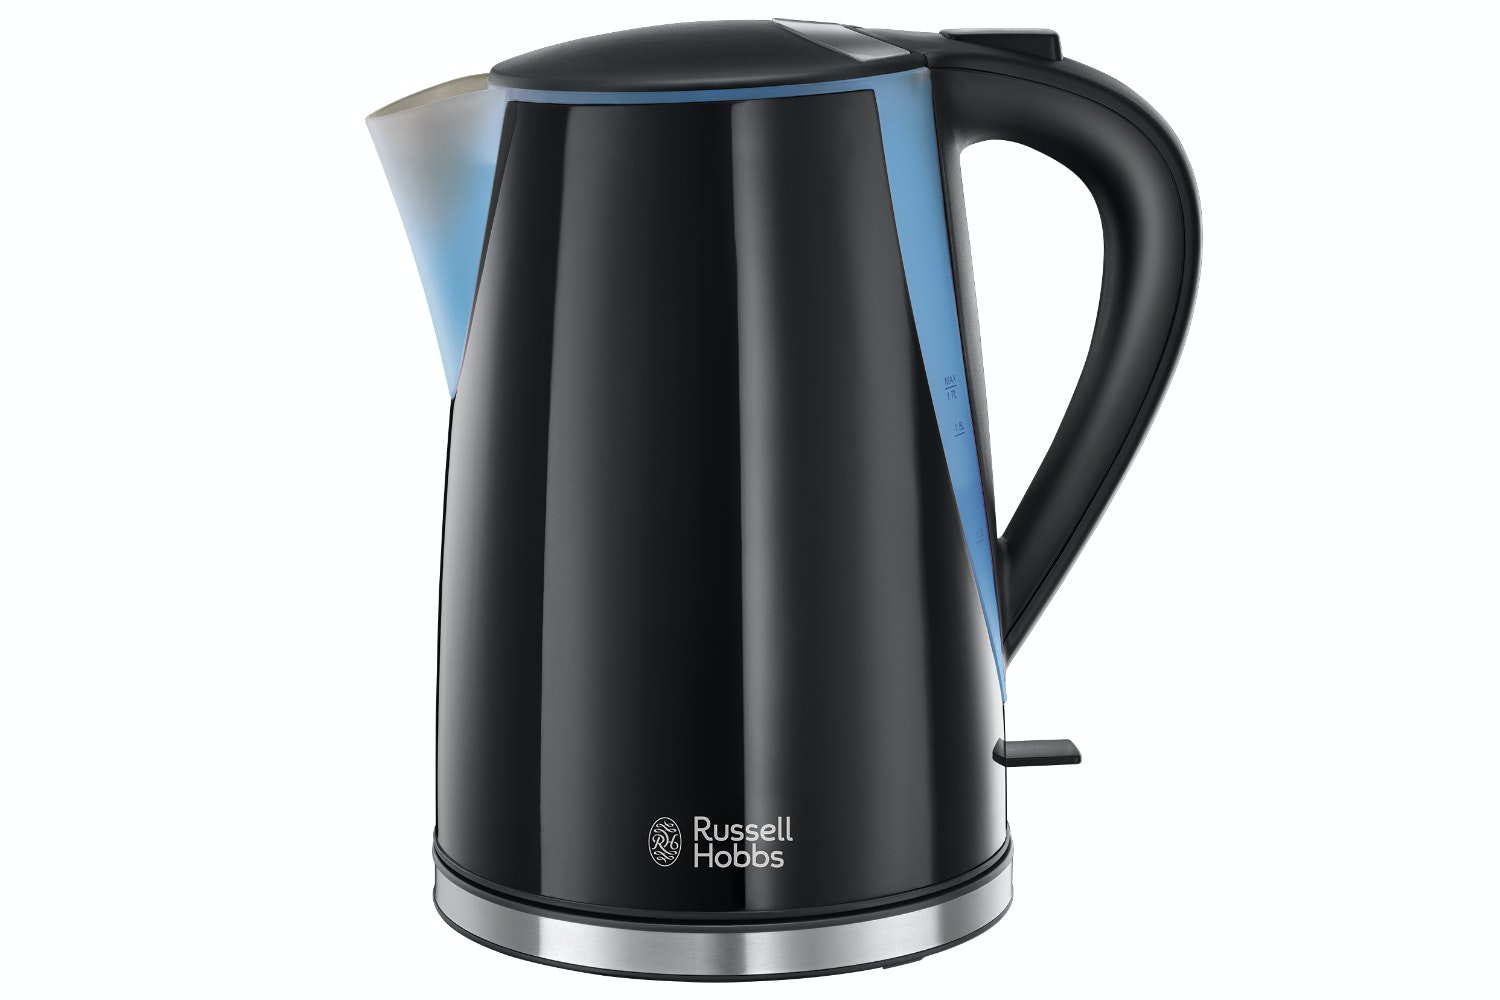 Russell Hobbs 1.7L Mode Kettle | Black